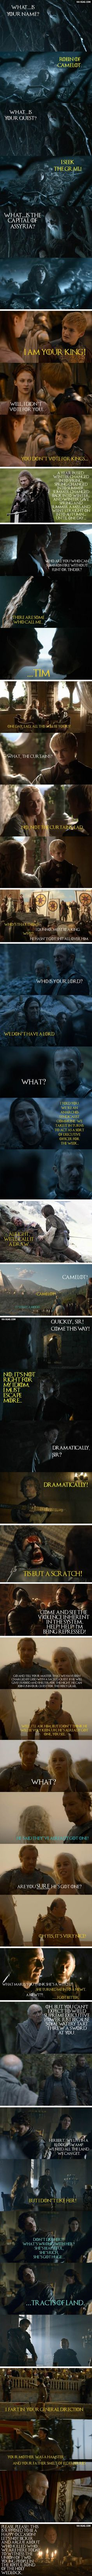 """""""Game Of Thrones"""" Moments Mashuped With """"Monty Python And The Holy Grail"""" Quotes"""